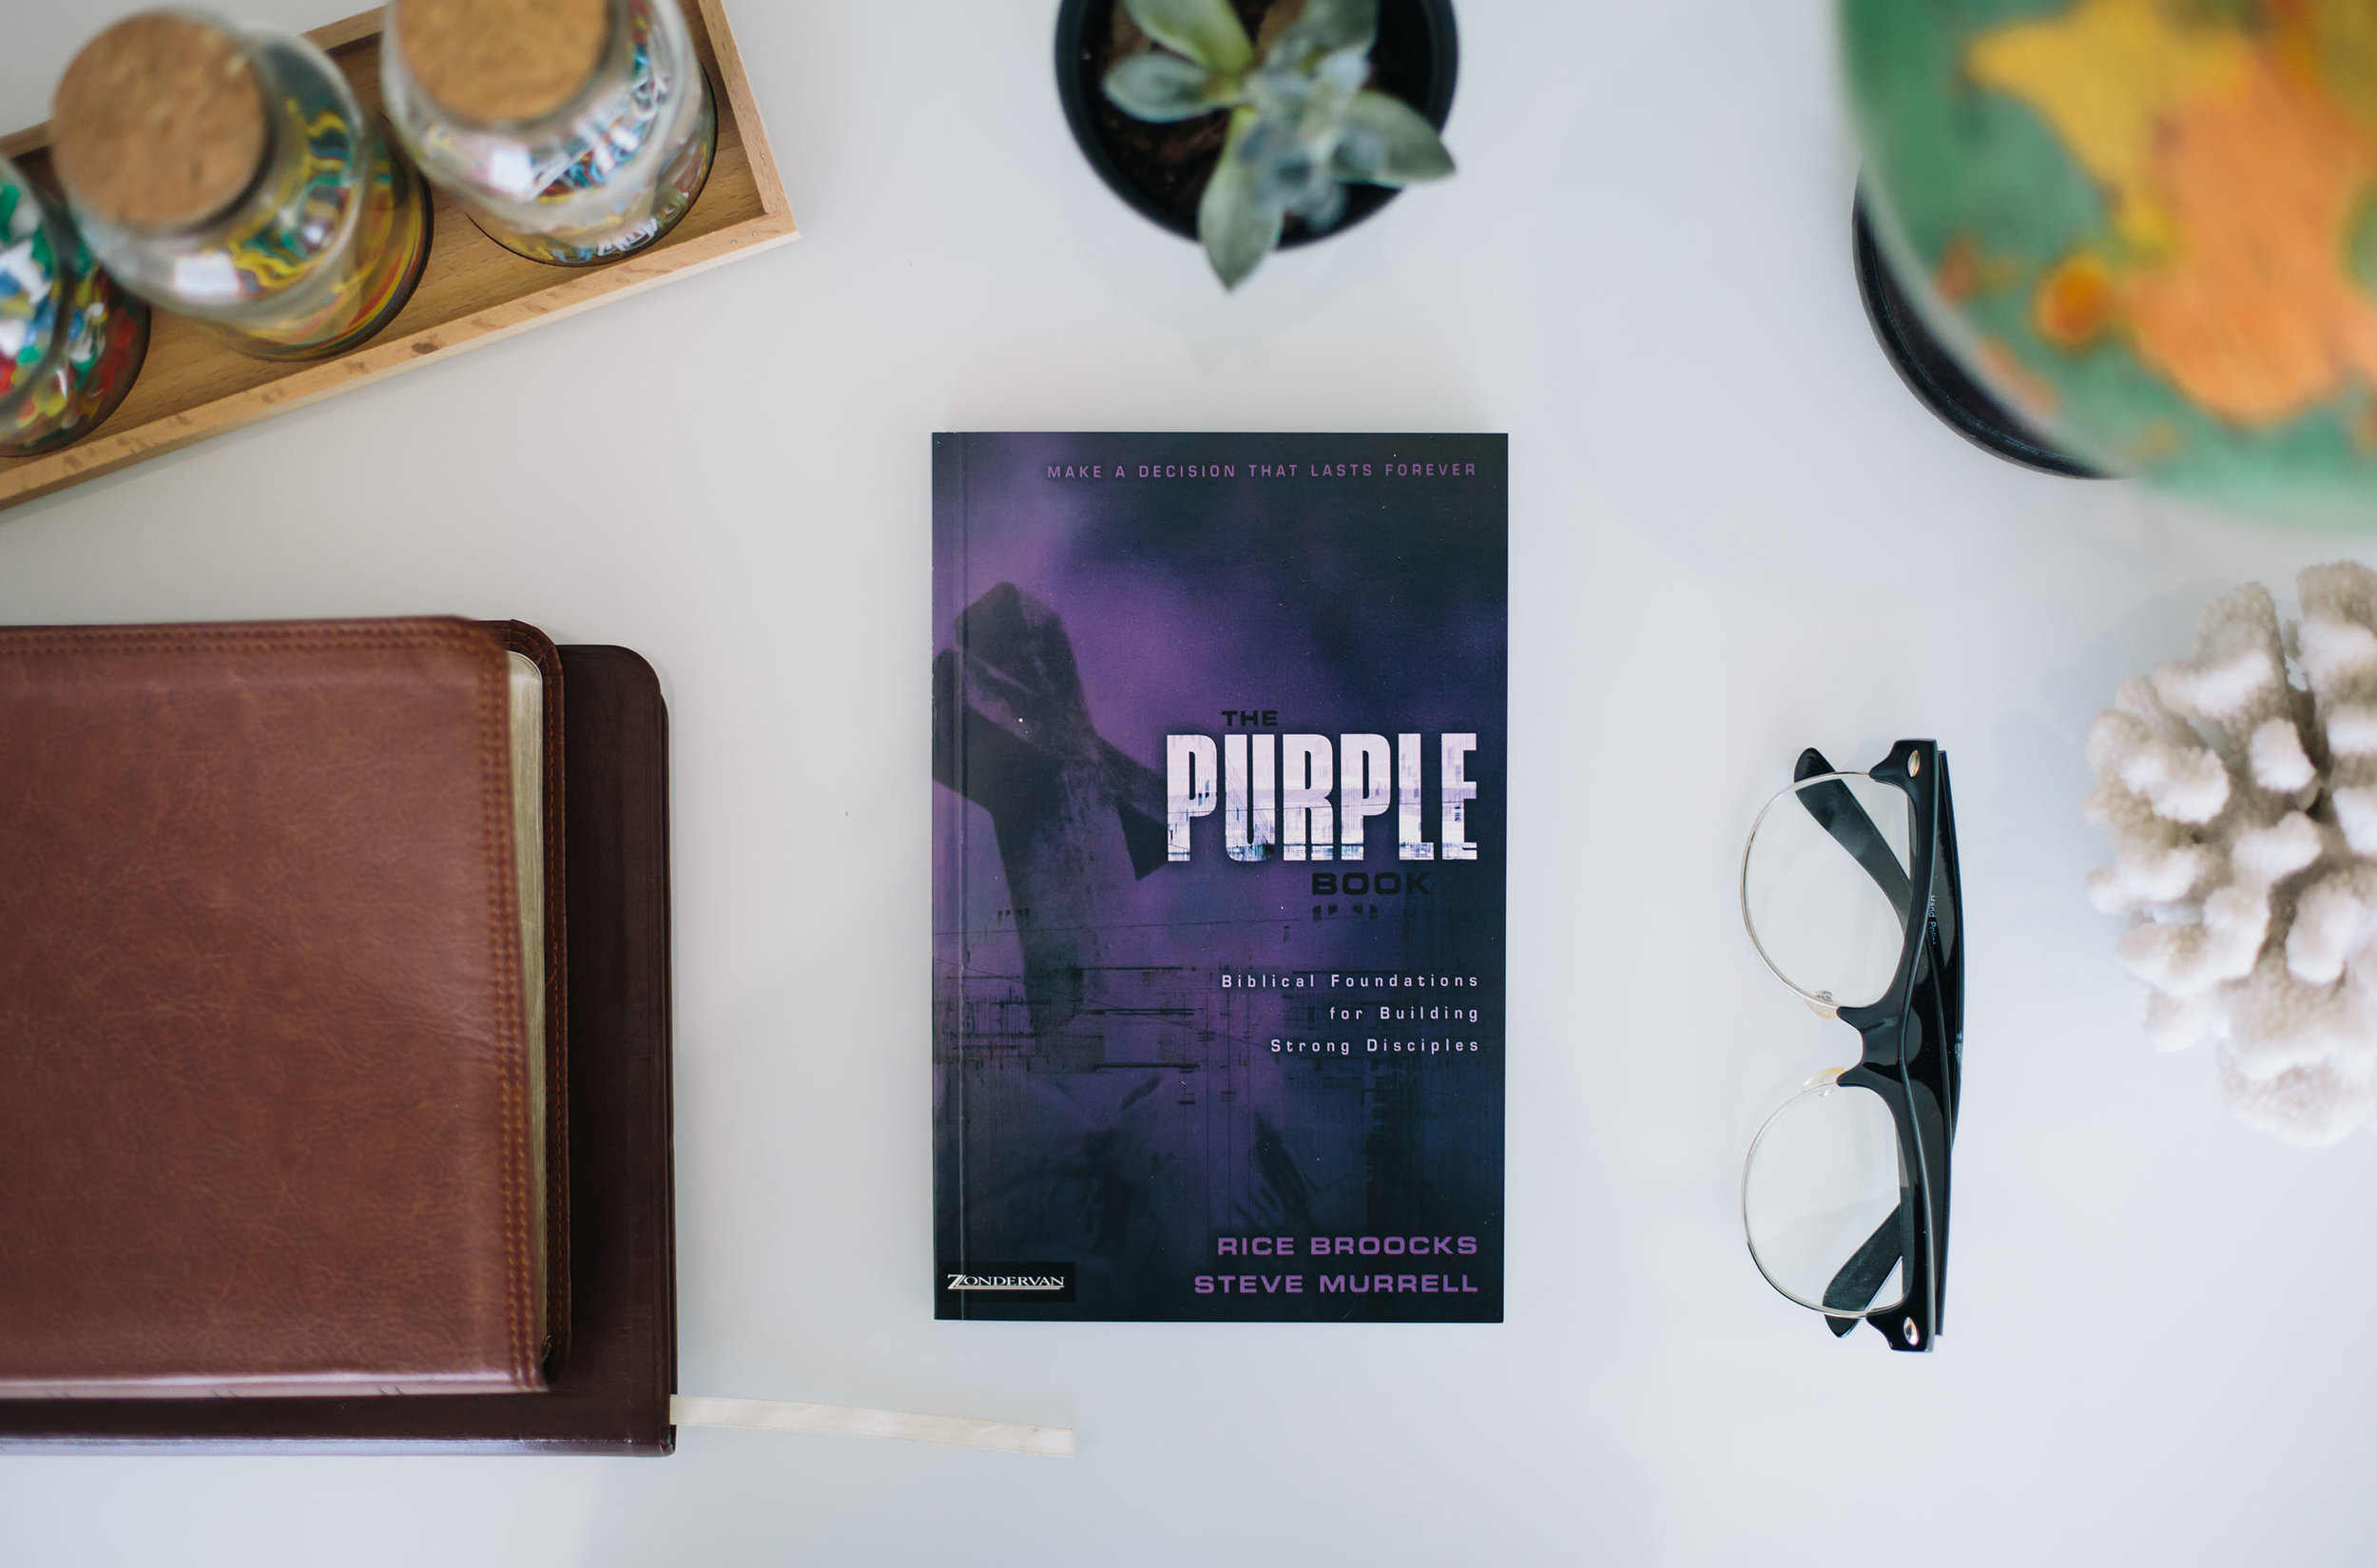 Are you looking to build or enhance your biblical foundations? Are you making CLC your church home? Sign up below to take part in our Purple Book Class!